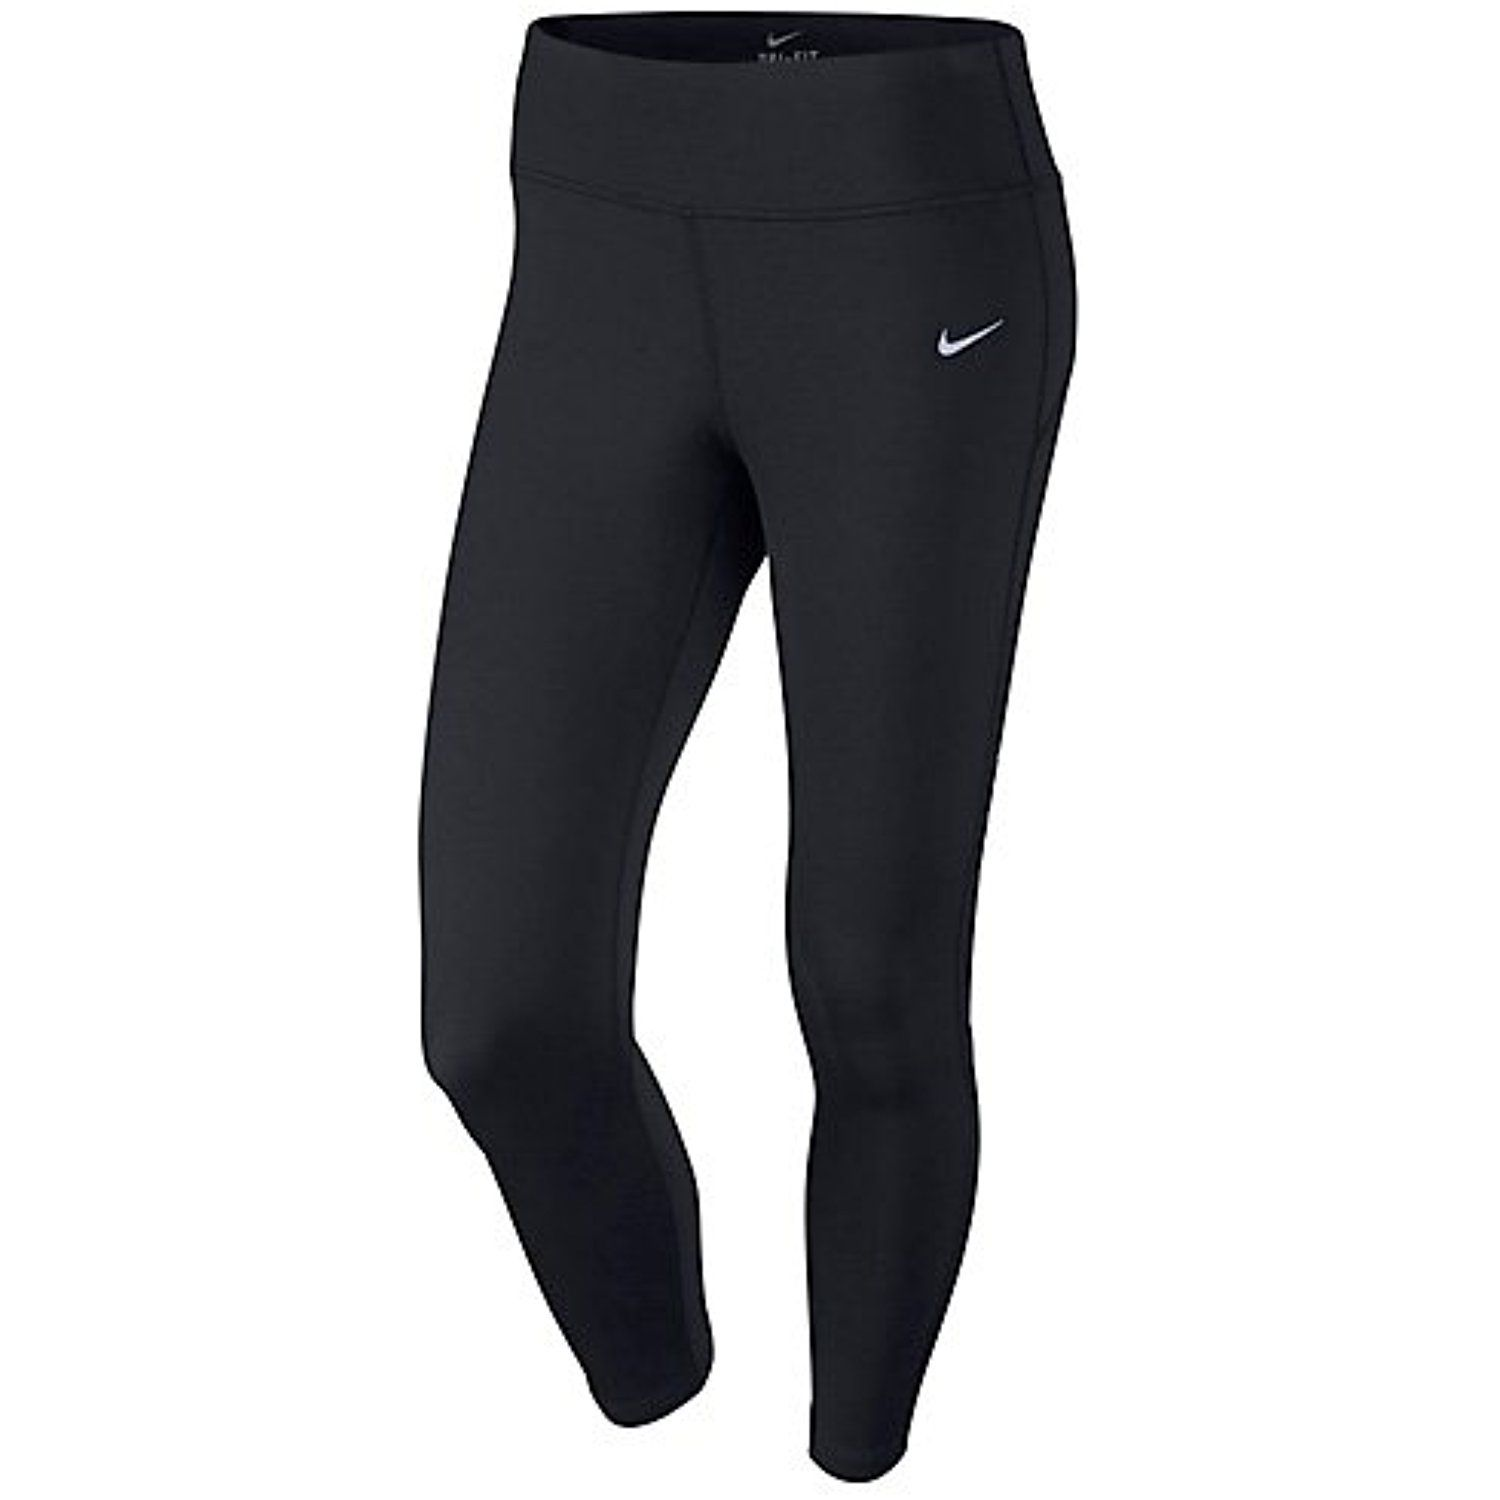 Nike Dri-Fit Essential Women's Capri Running Tights >>> More info could be